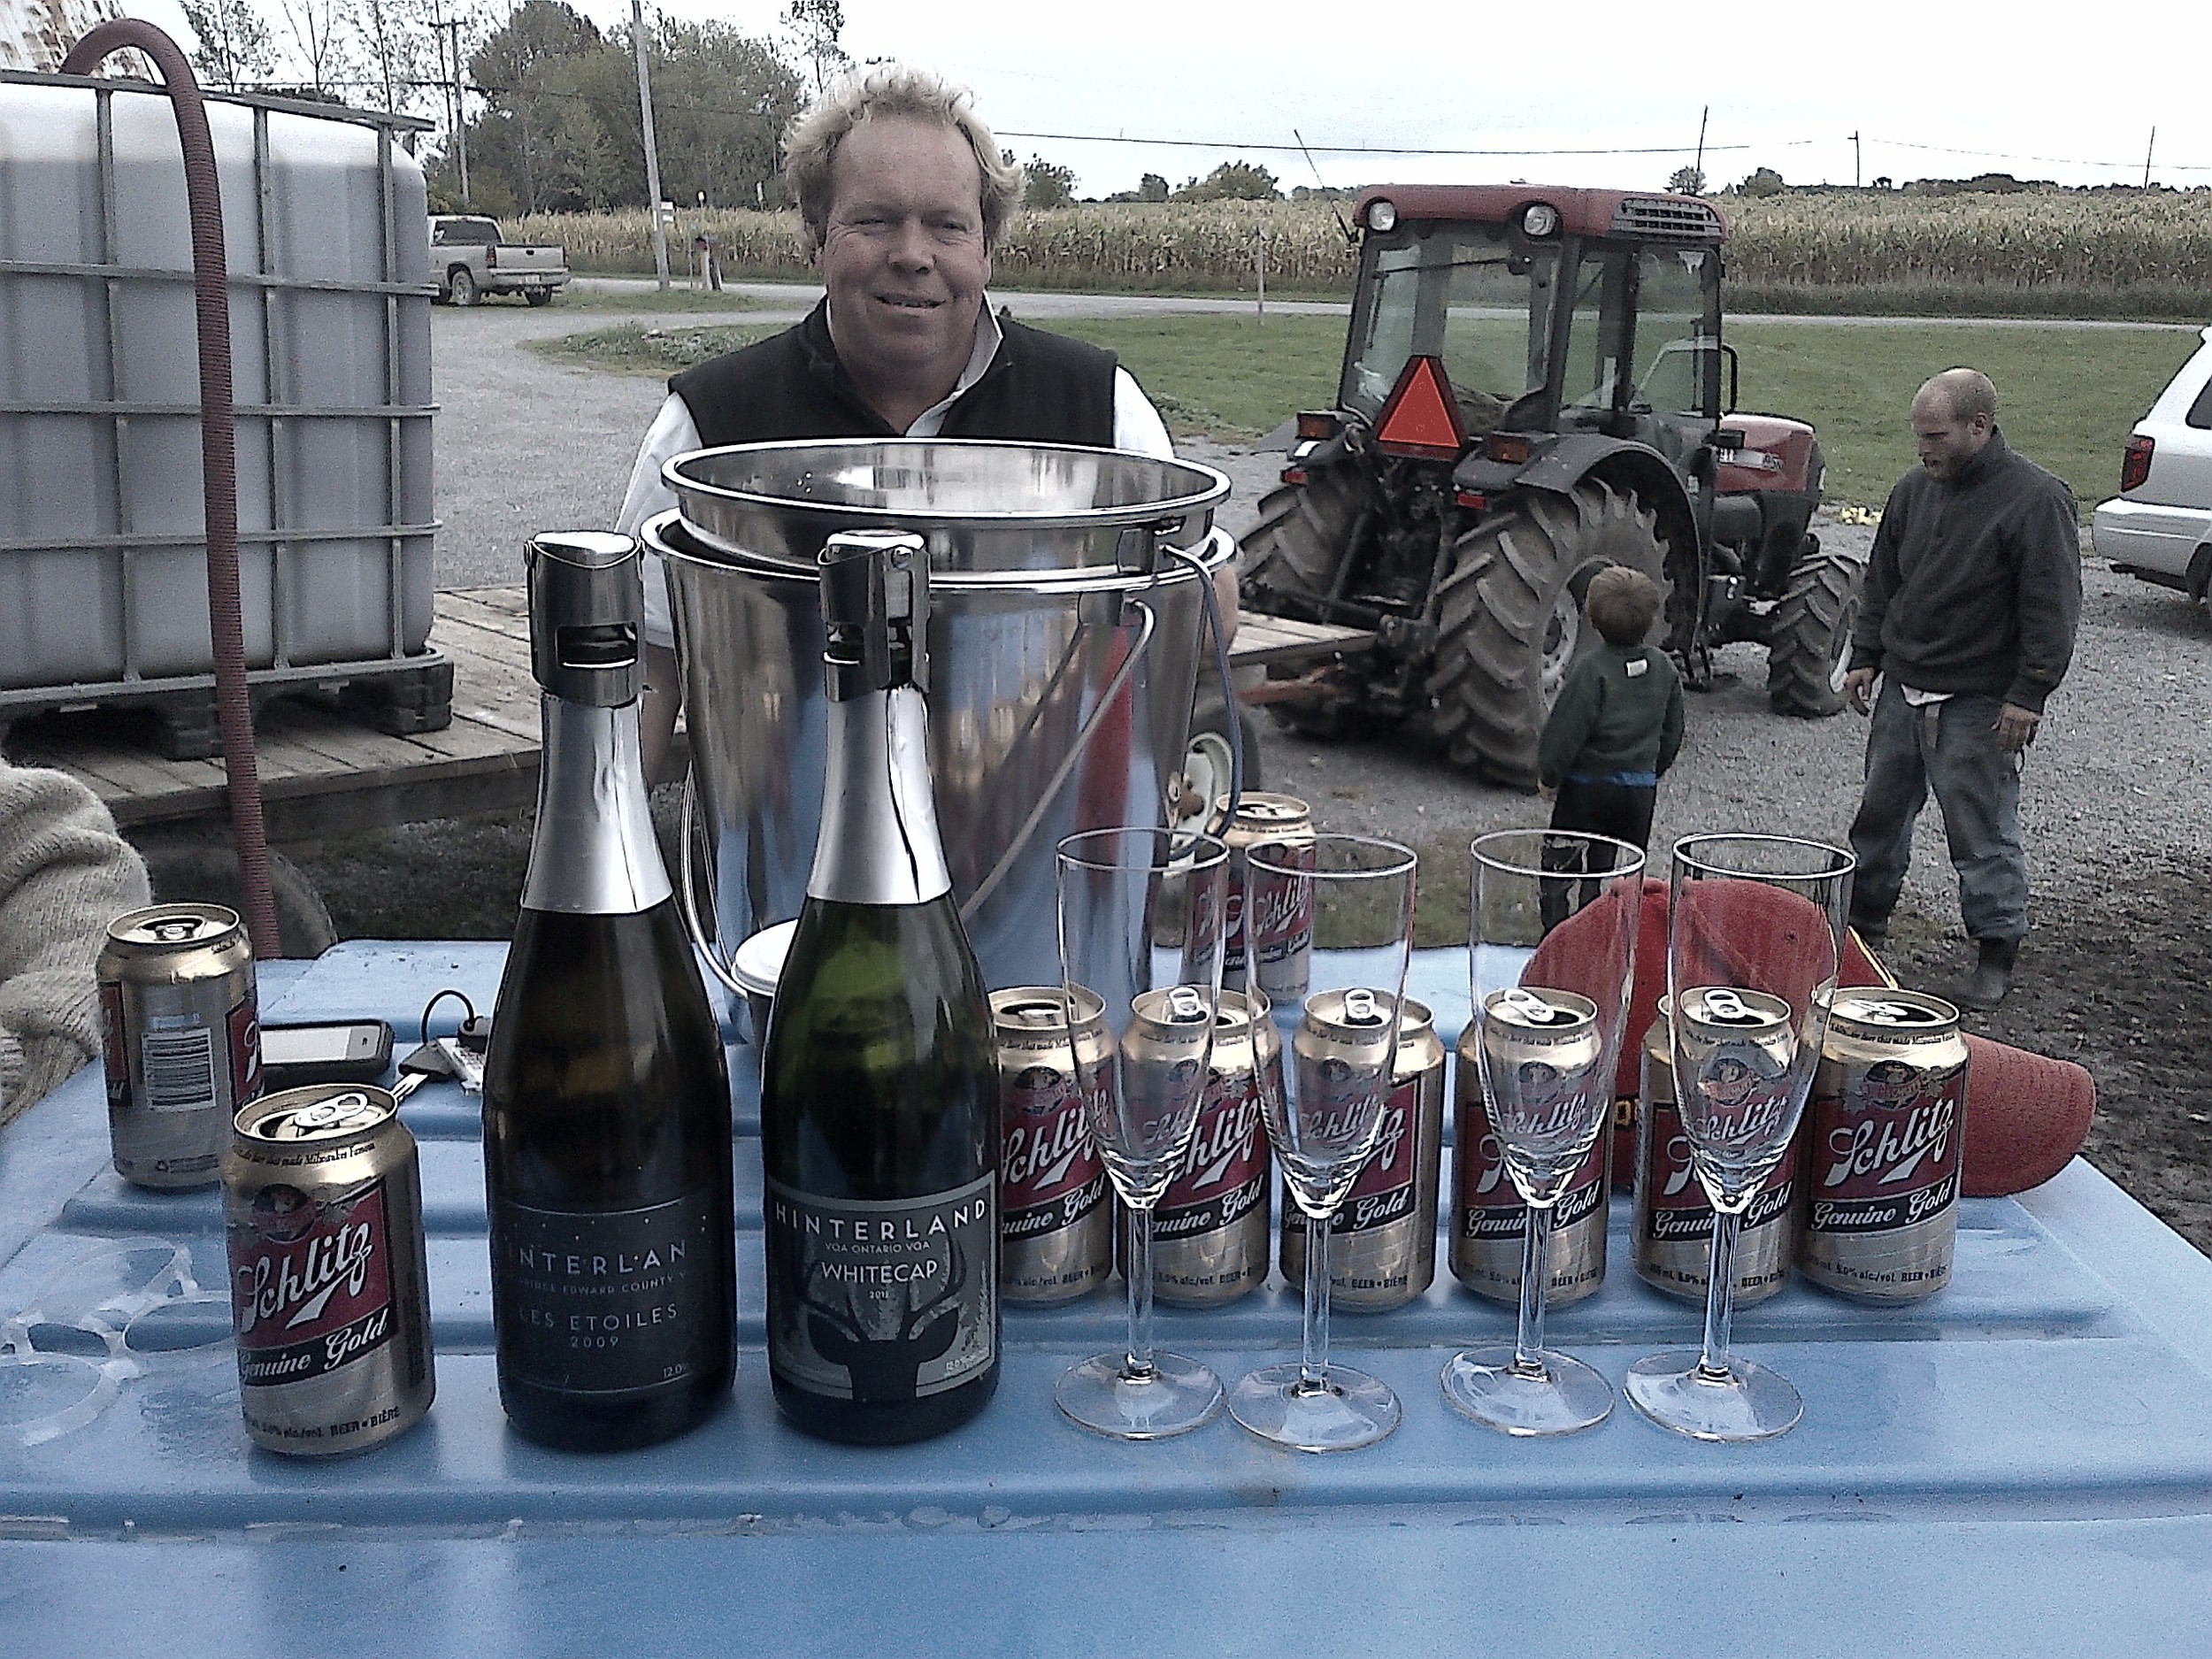 Norm stops by just in time for some afternoon beers and bubbles once the press is loaded...